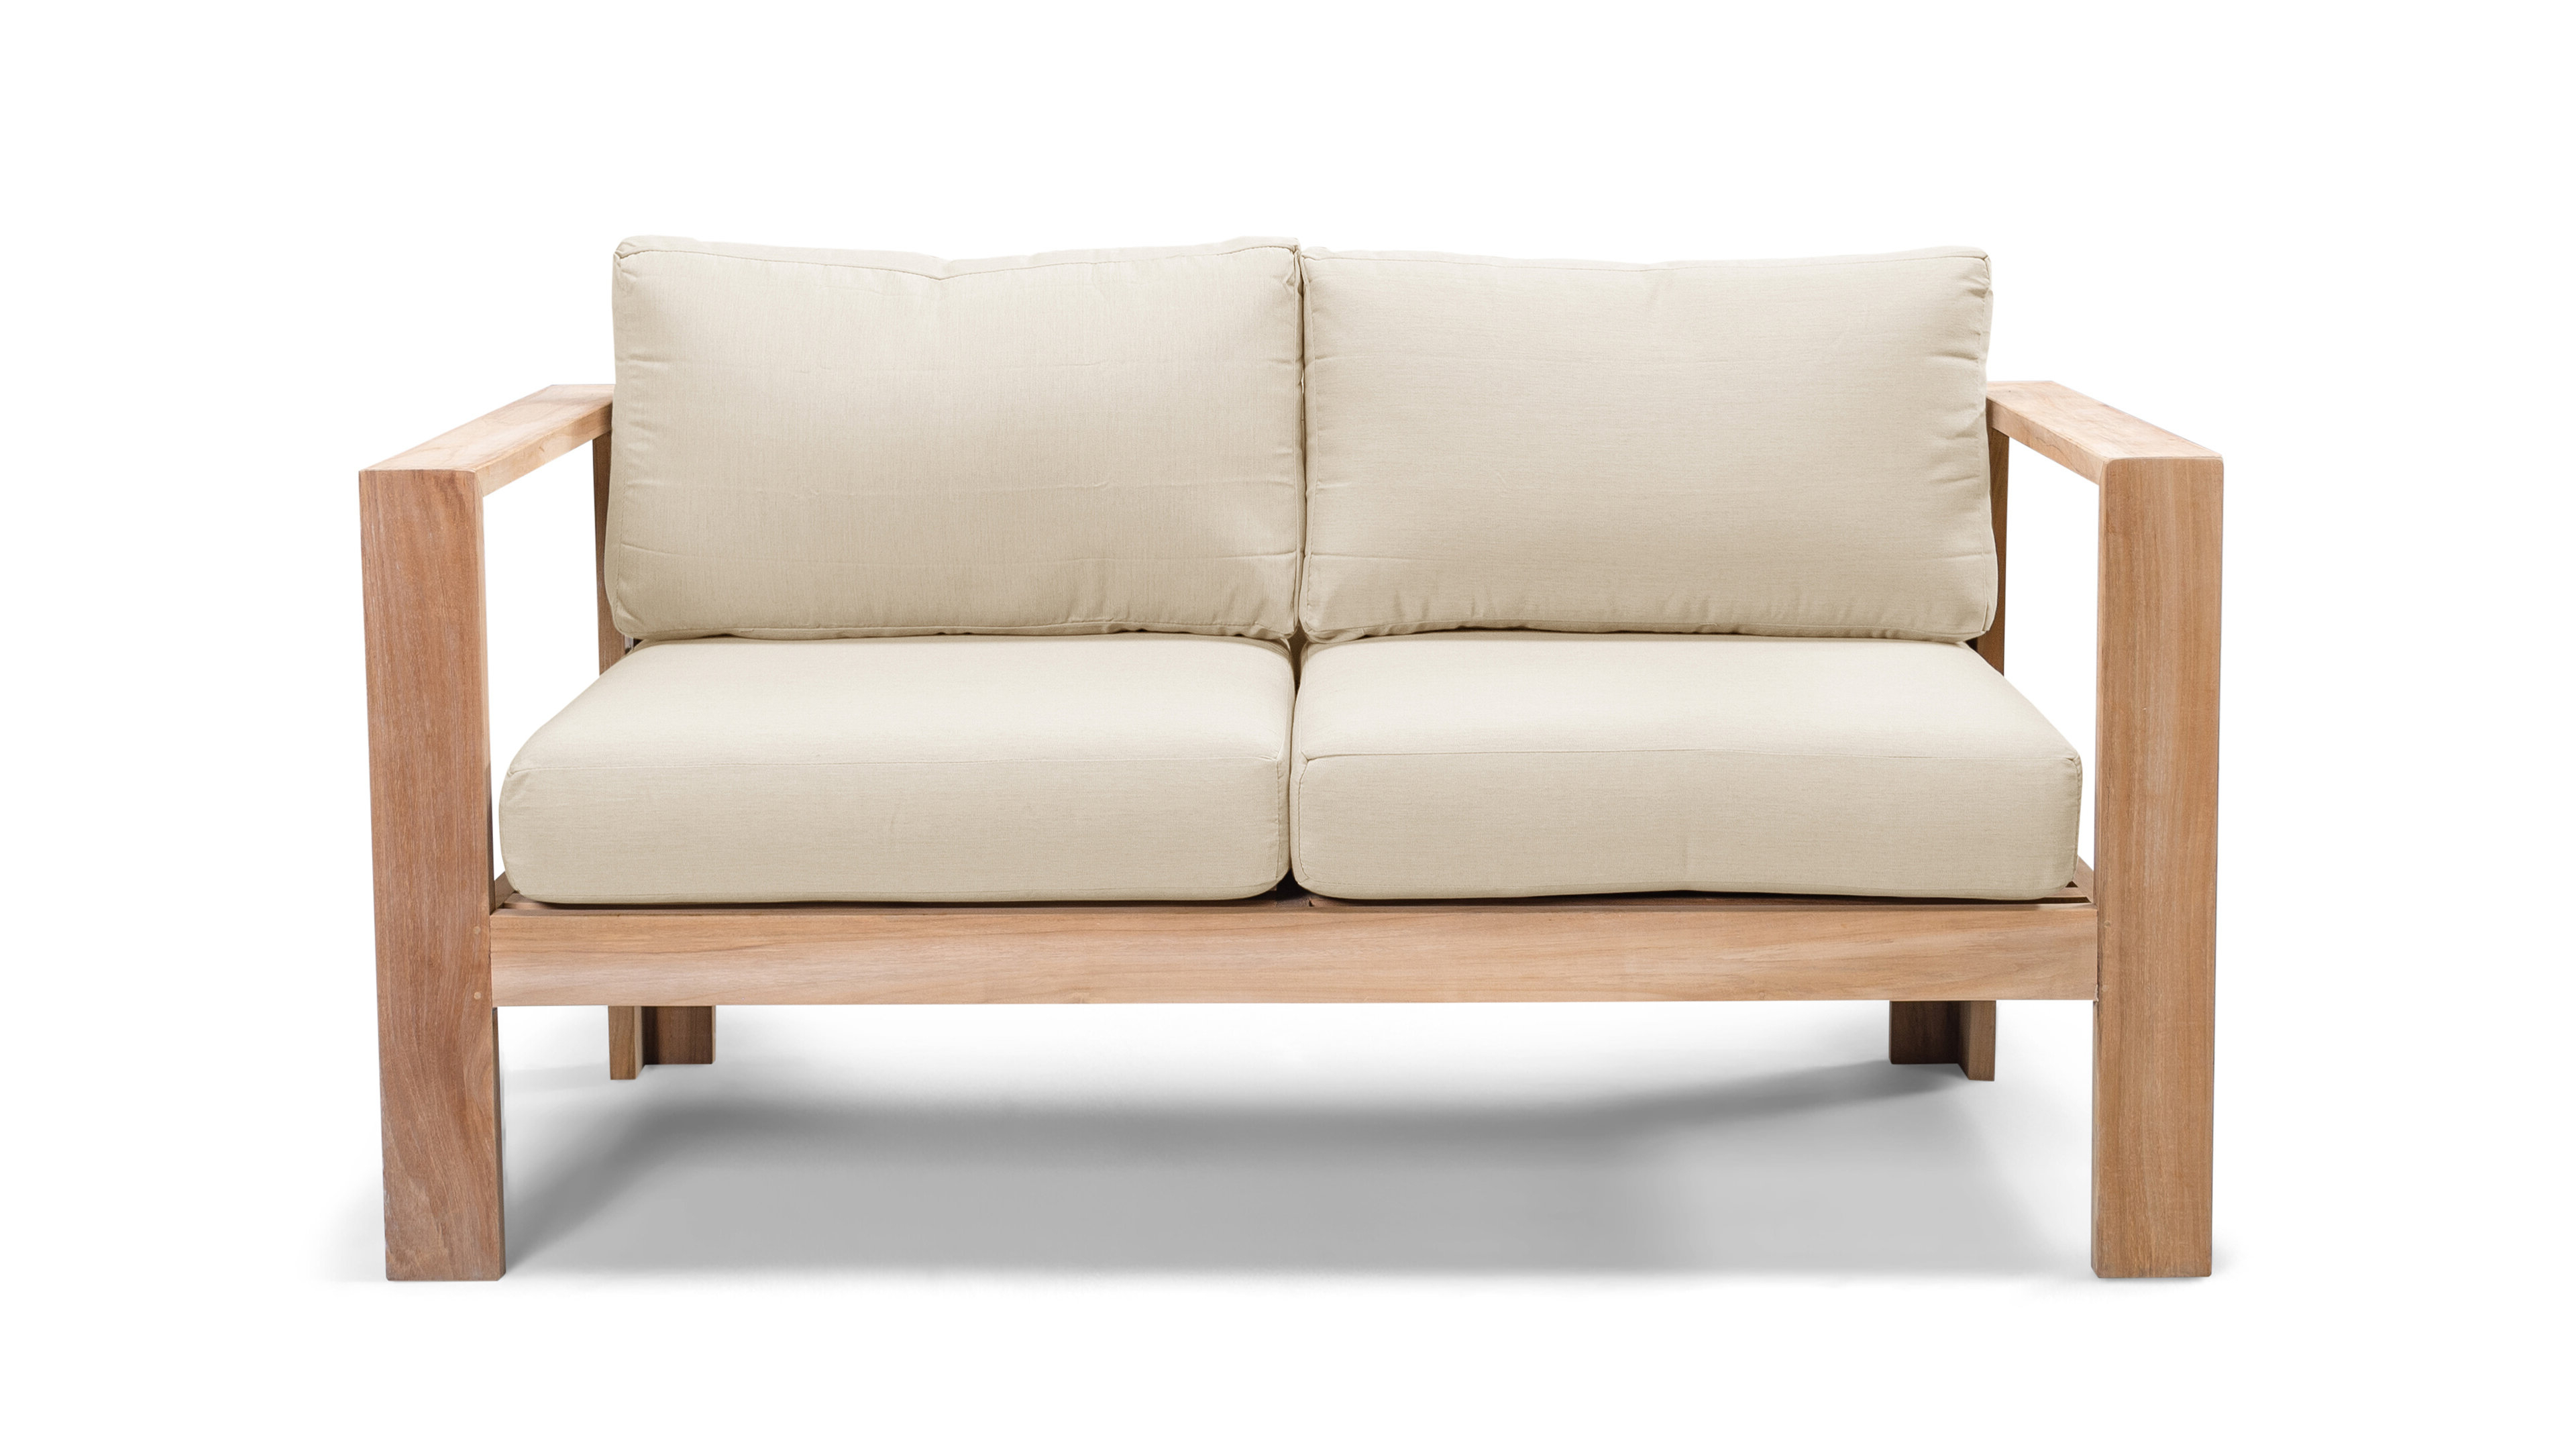 Preferred Gillian Loveseat With Cushions Pertaining To Calila Teak Loveseats With Cushion (View 9 of 20)